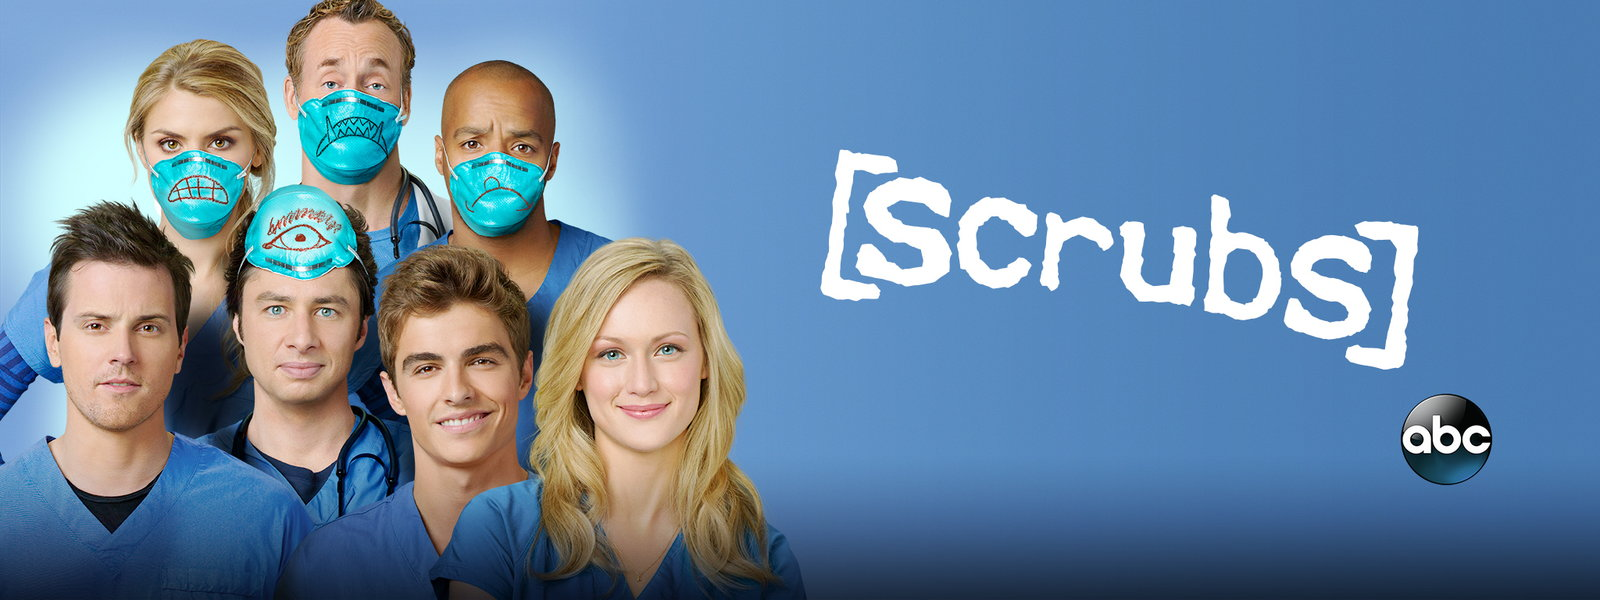 Banner for the hit series on hulu and abc scrubs